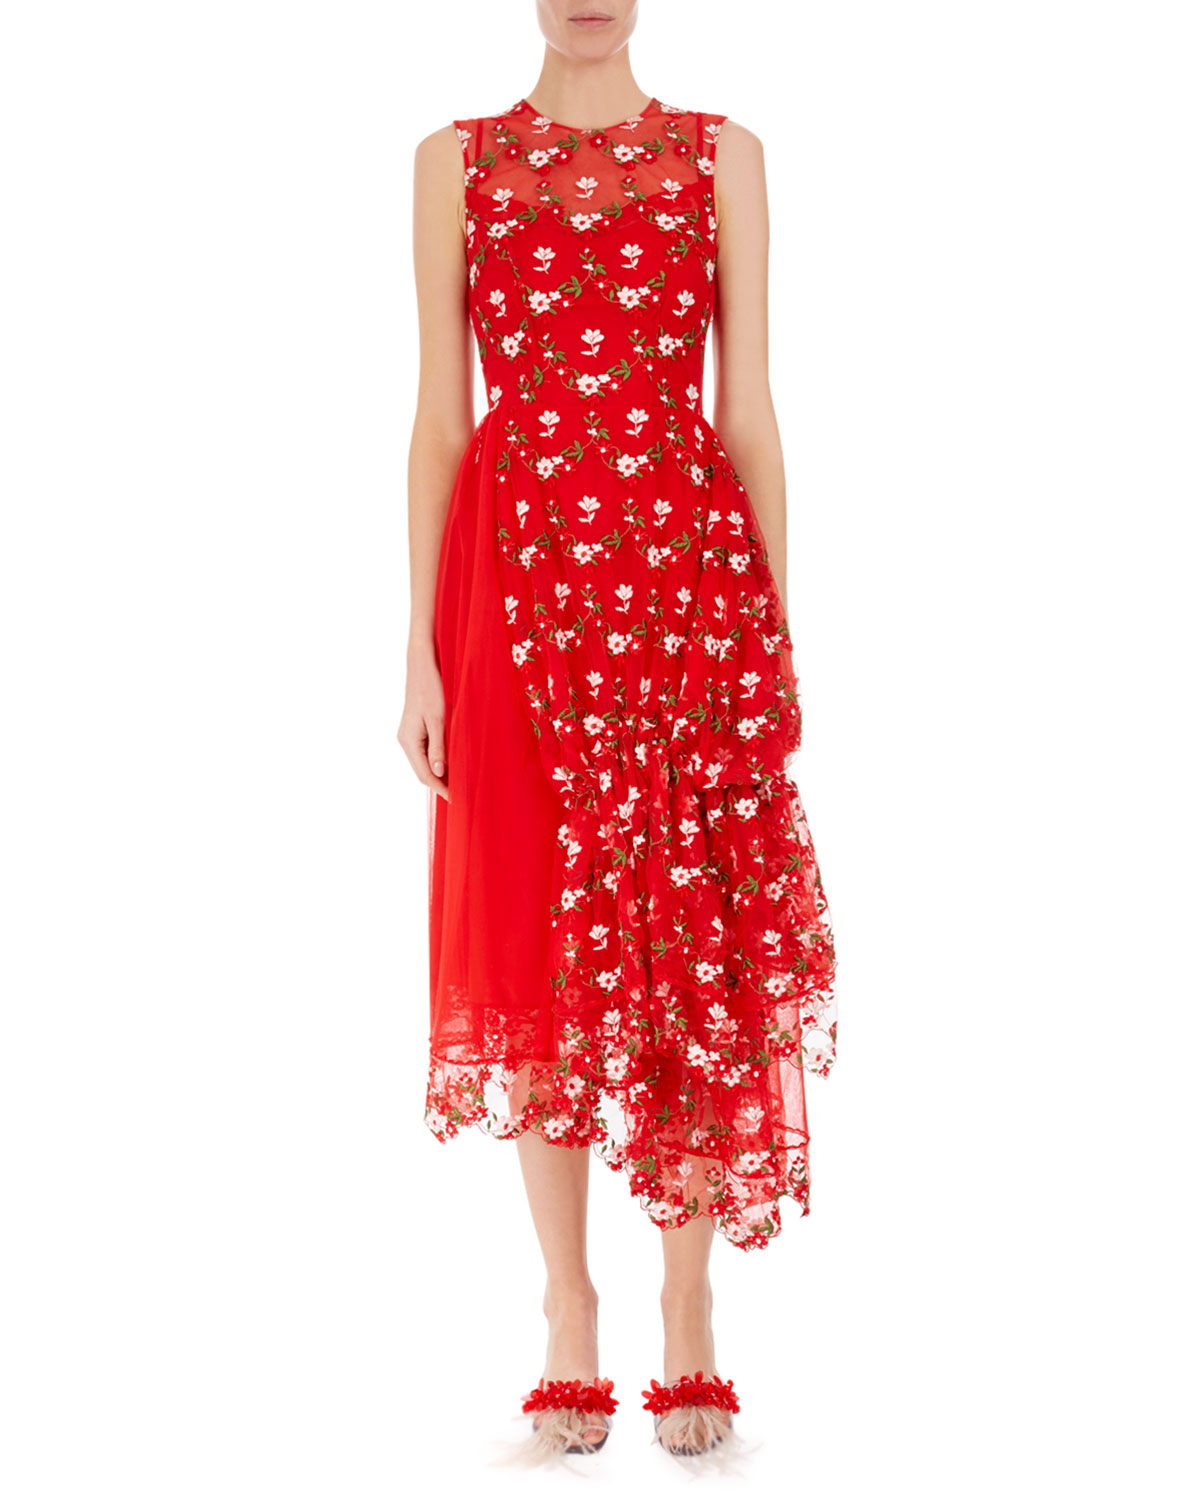 ed1c91f5d76f0c Simone Rocha Sleeveless Floral Embroidered Tulle Dress